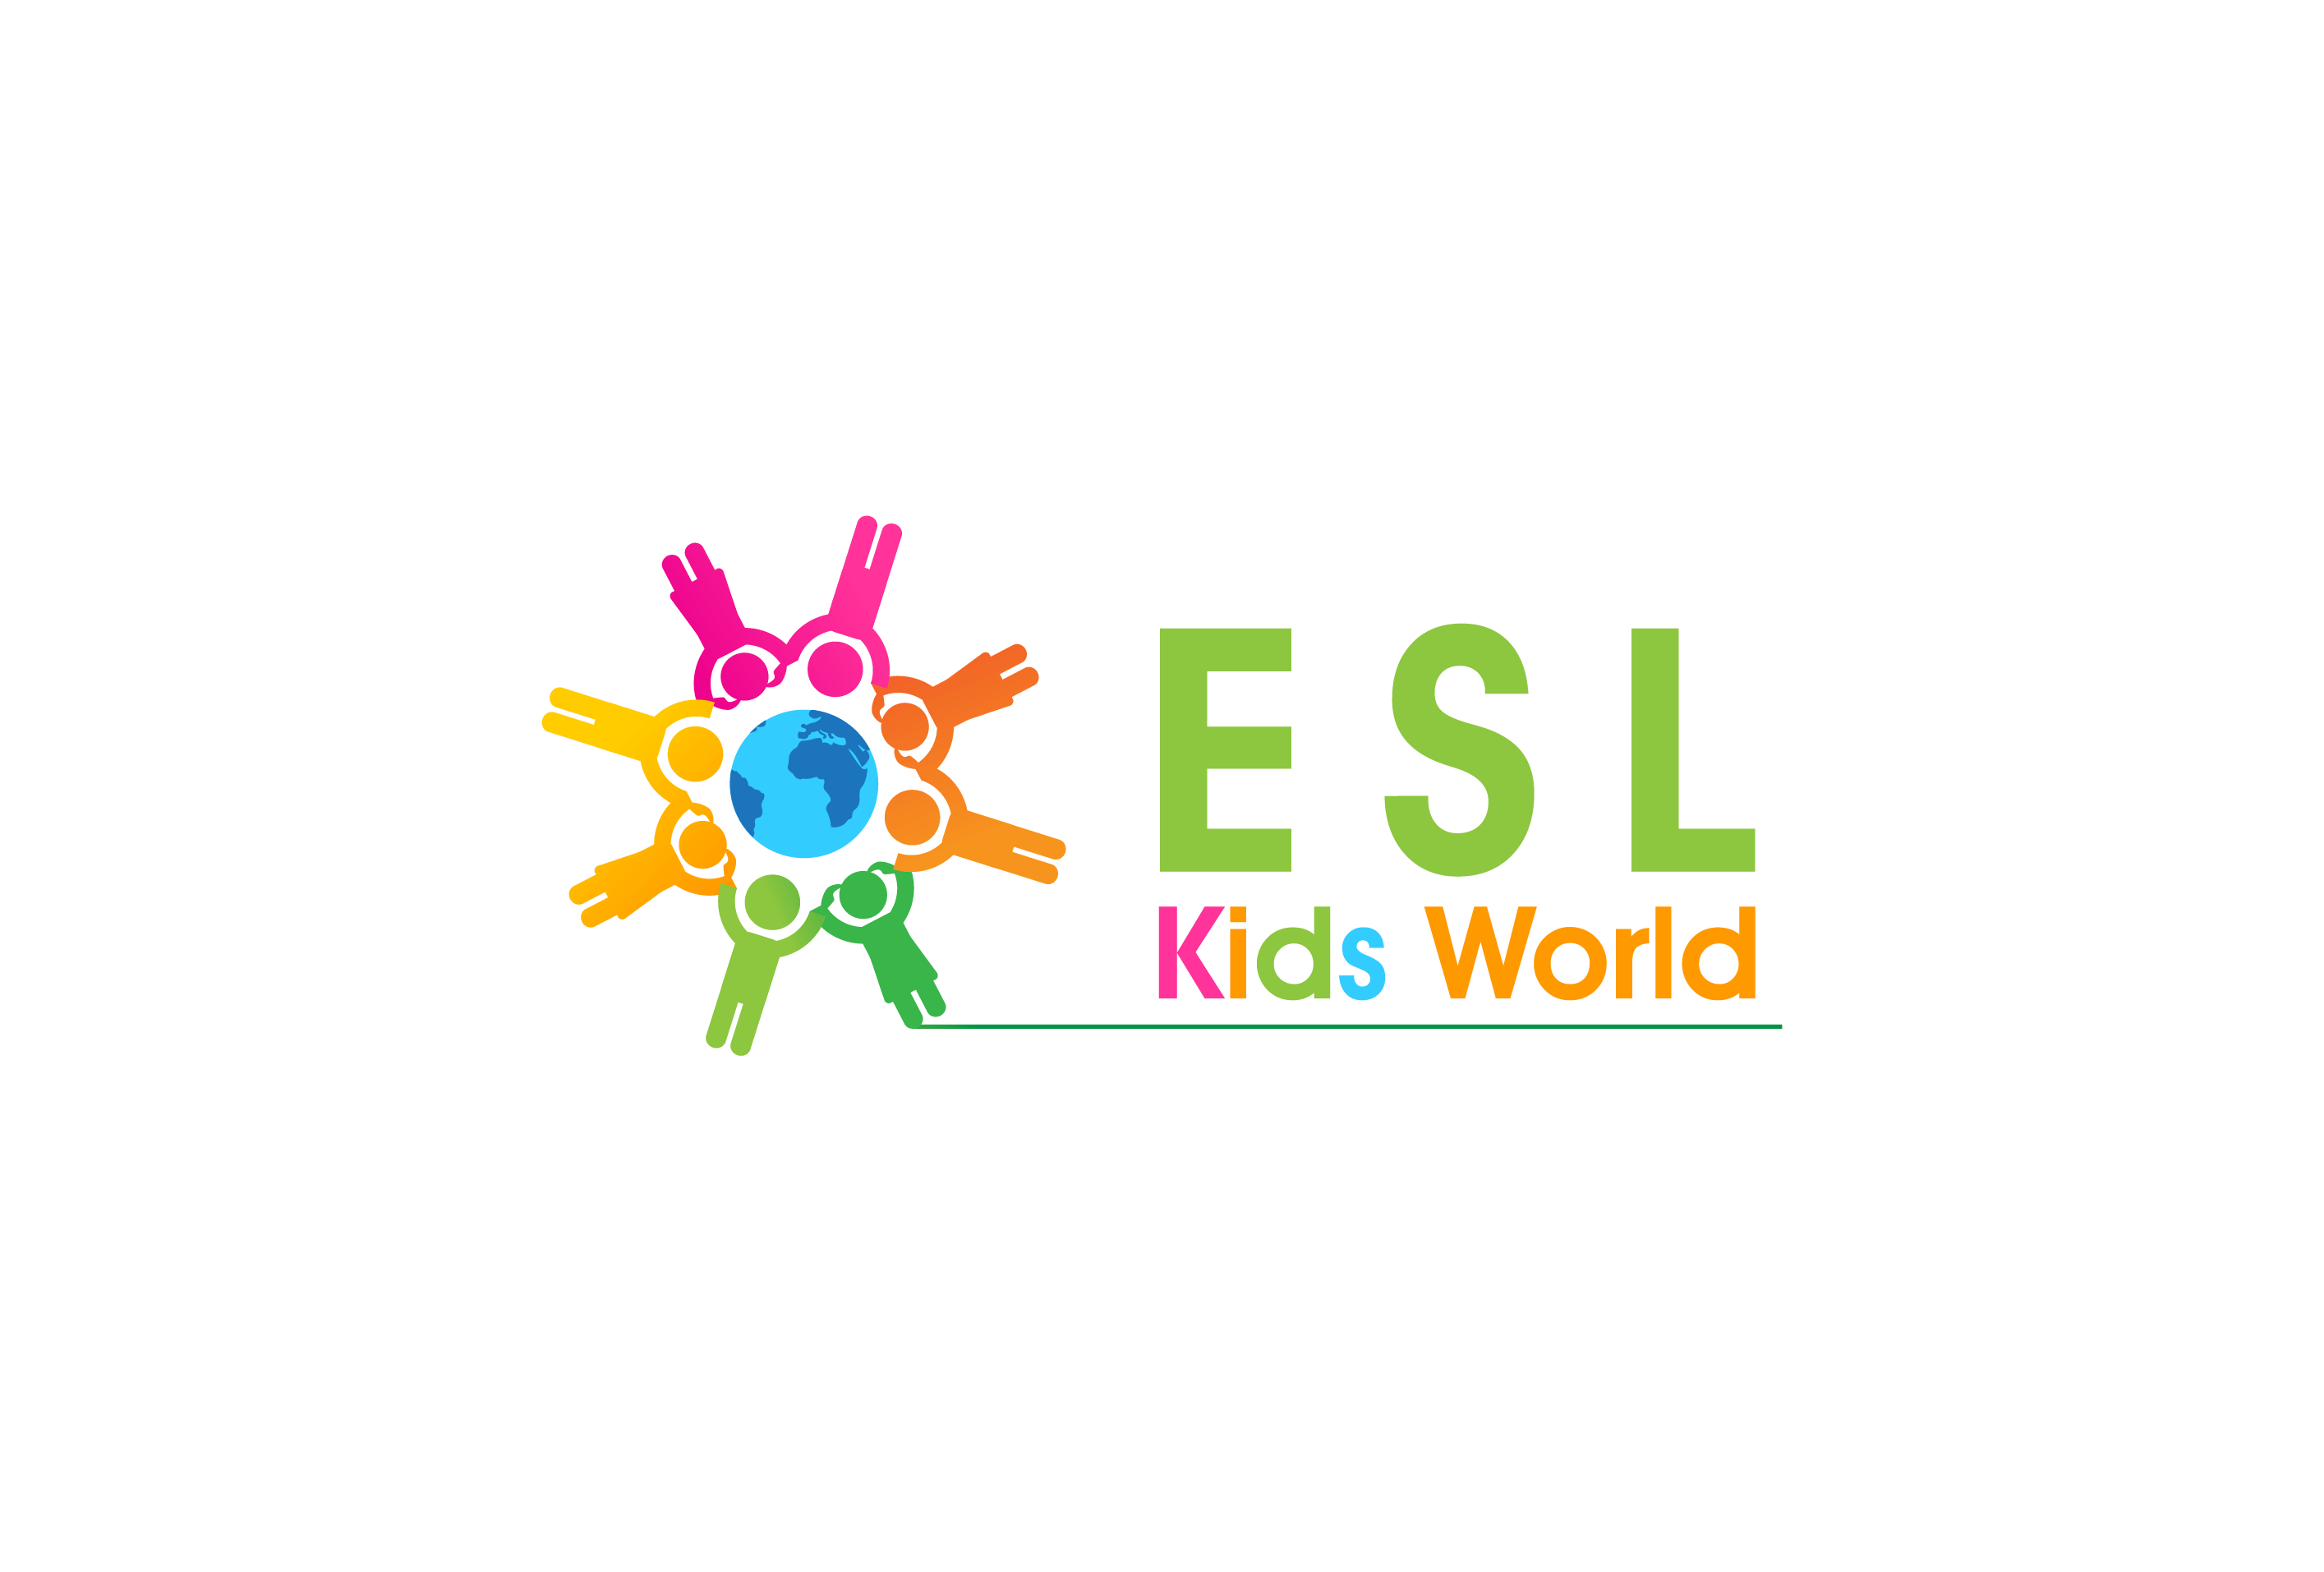 Esl Kids World